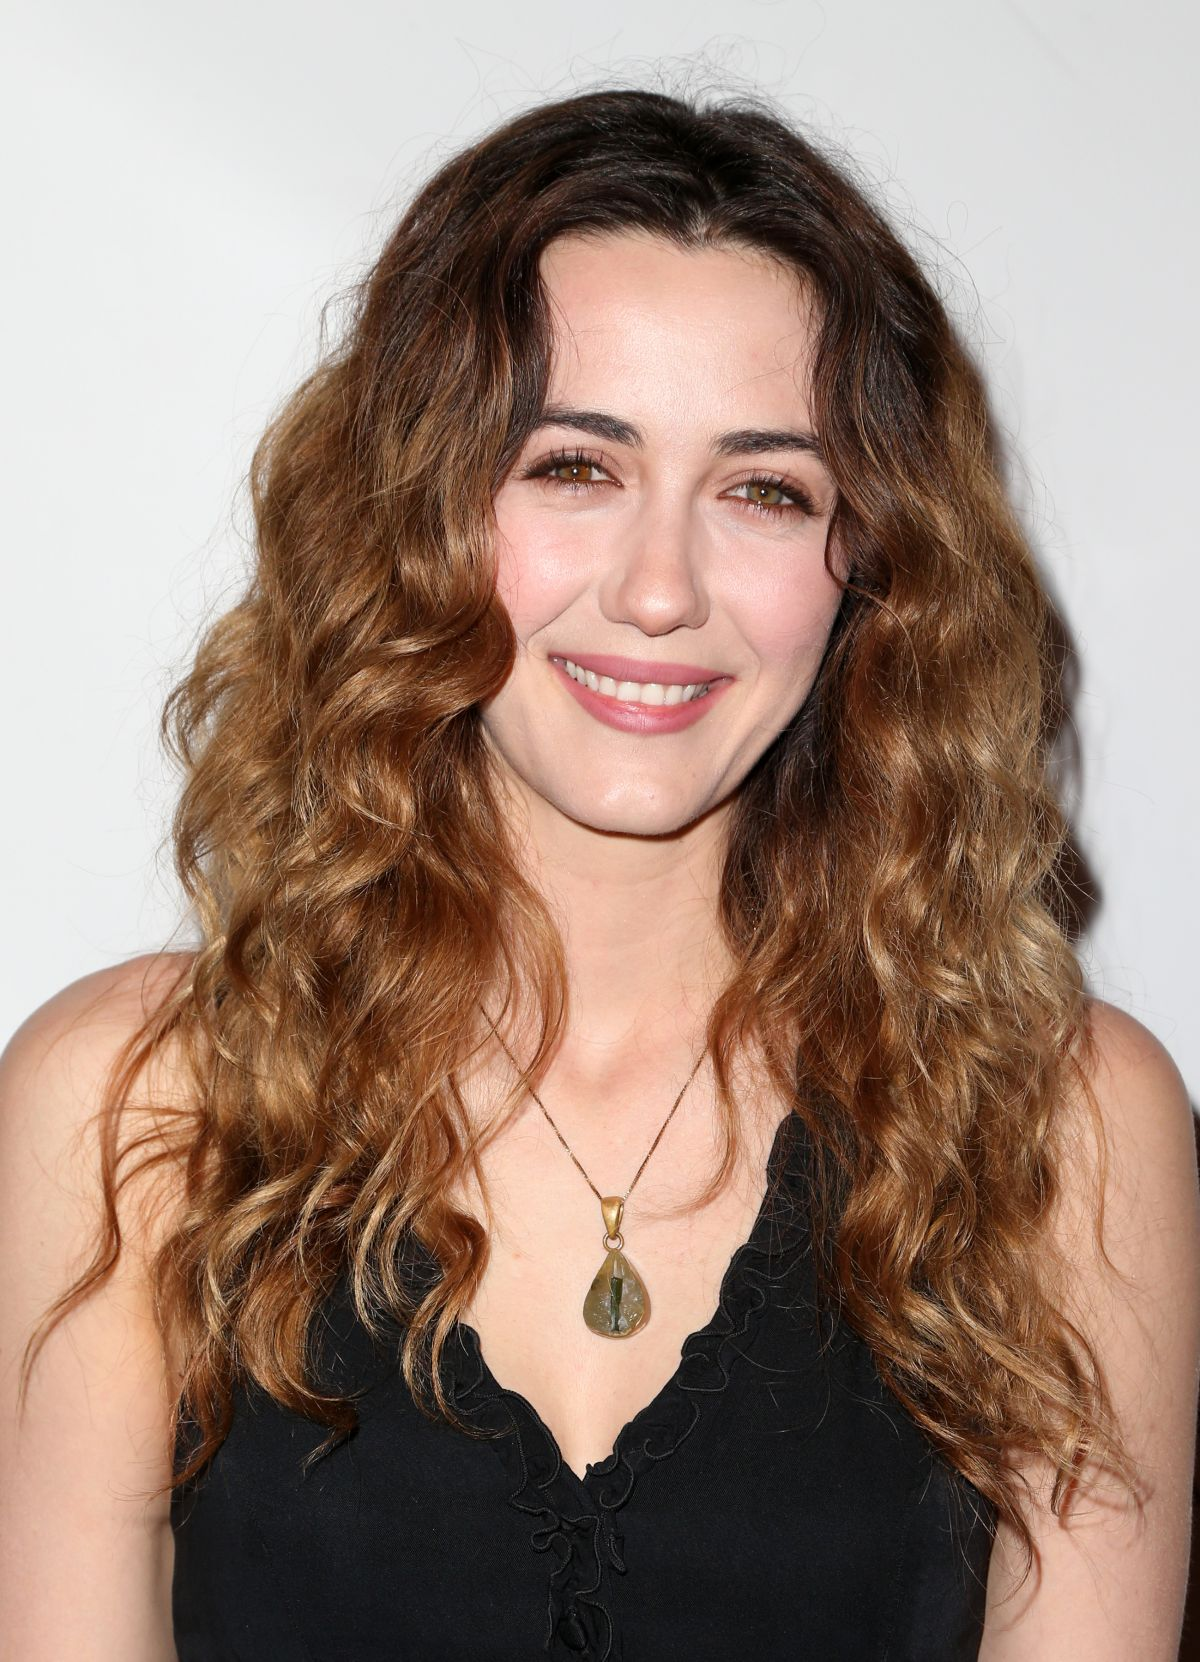 Madeline Zima At The Care Concert in LA - Celebzz - Celebzz